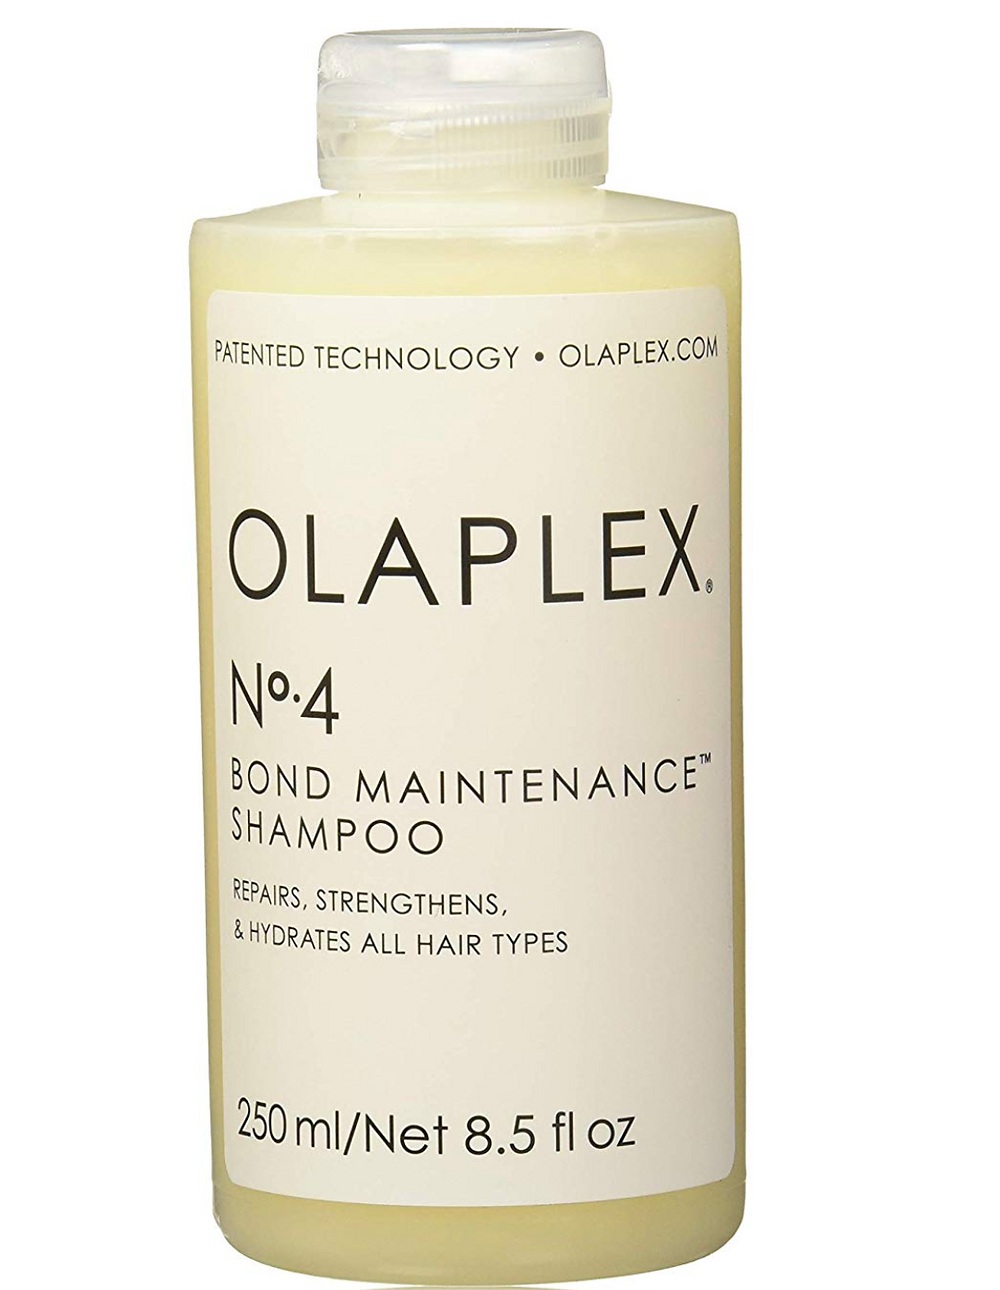 Olaplex Hair Strengthening Products